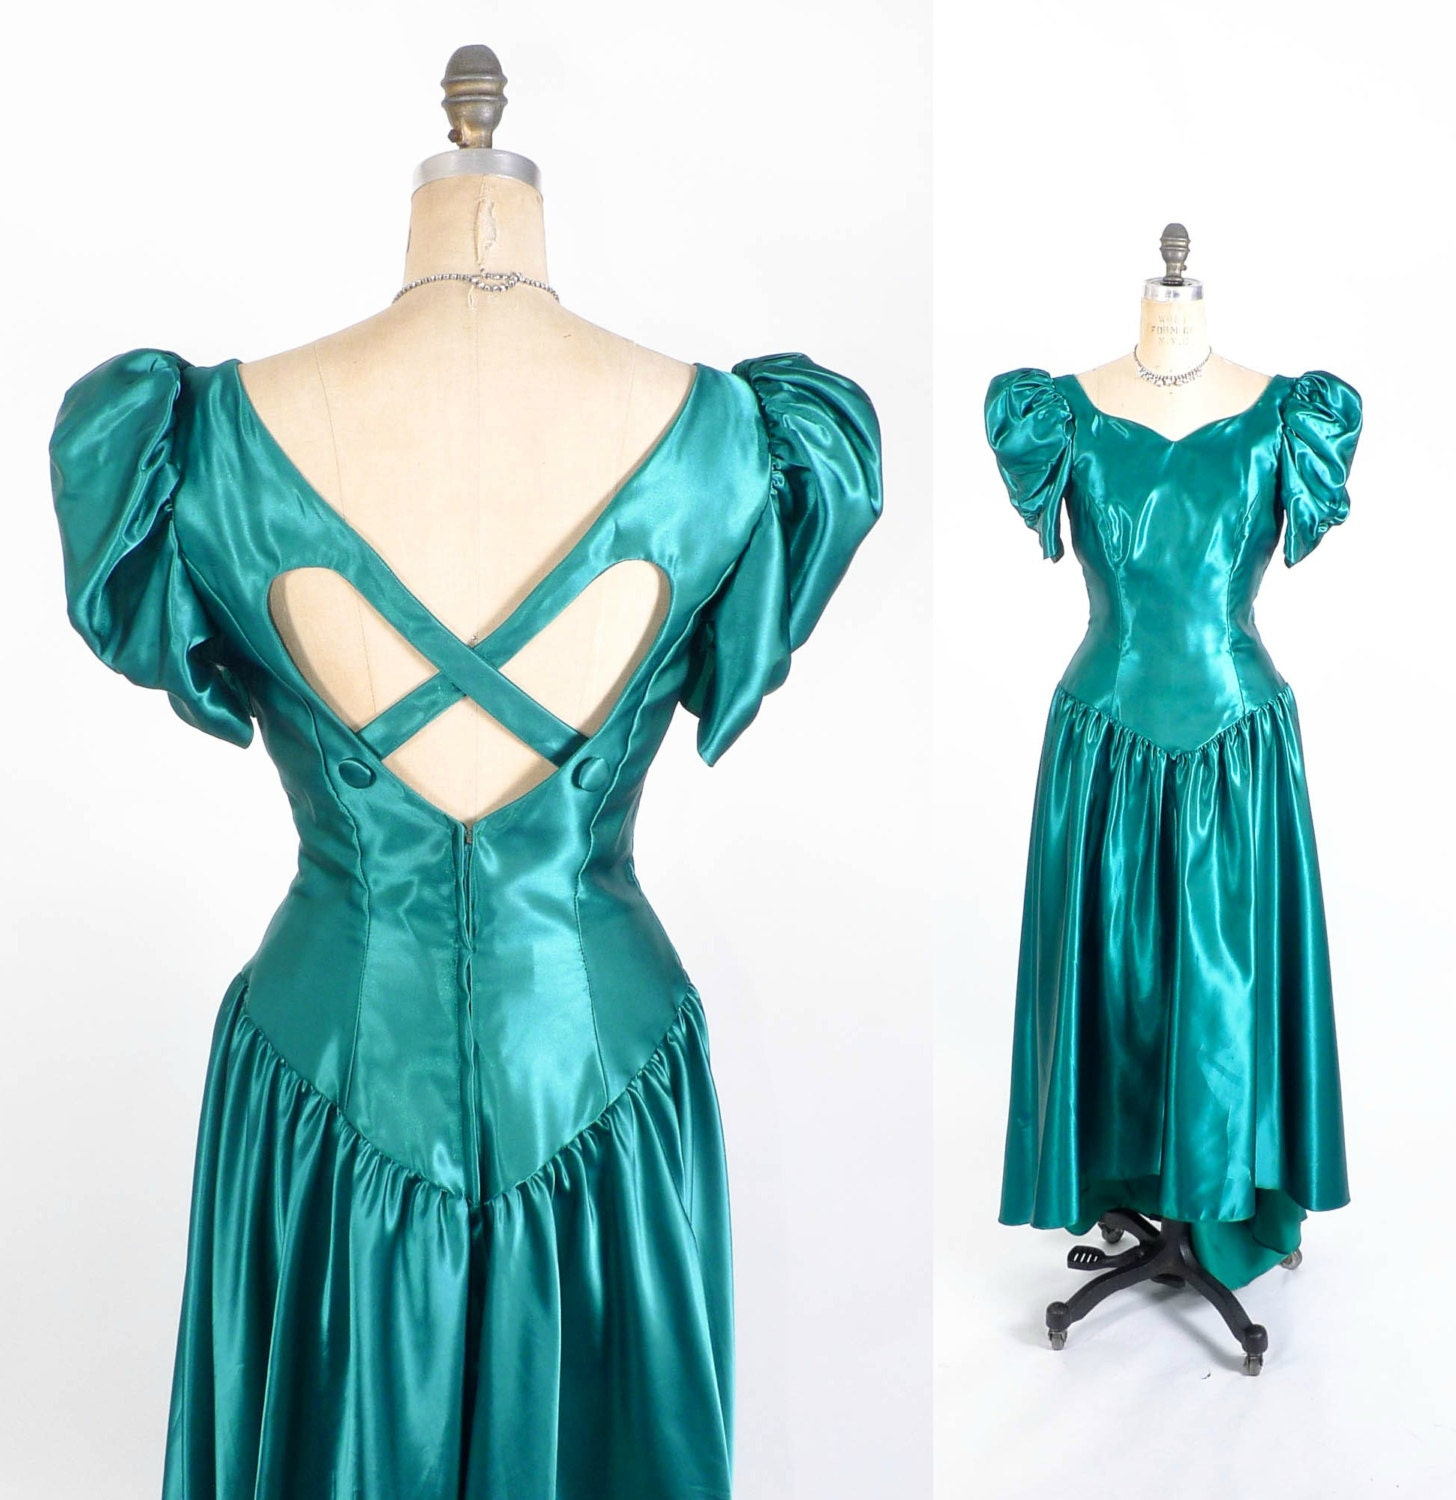 Vintage 80's Prom Dress // Teal Fishtail Prom Gown